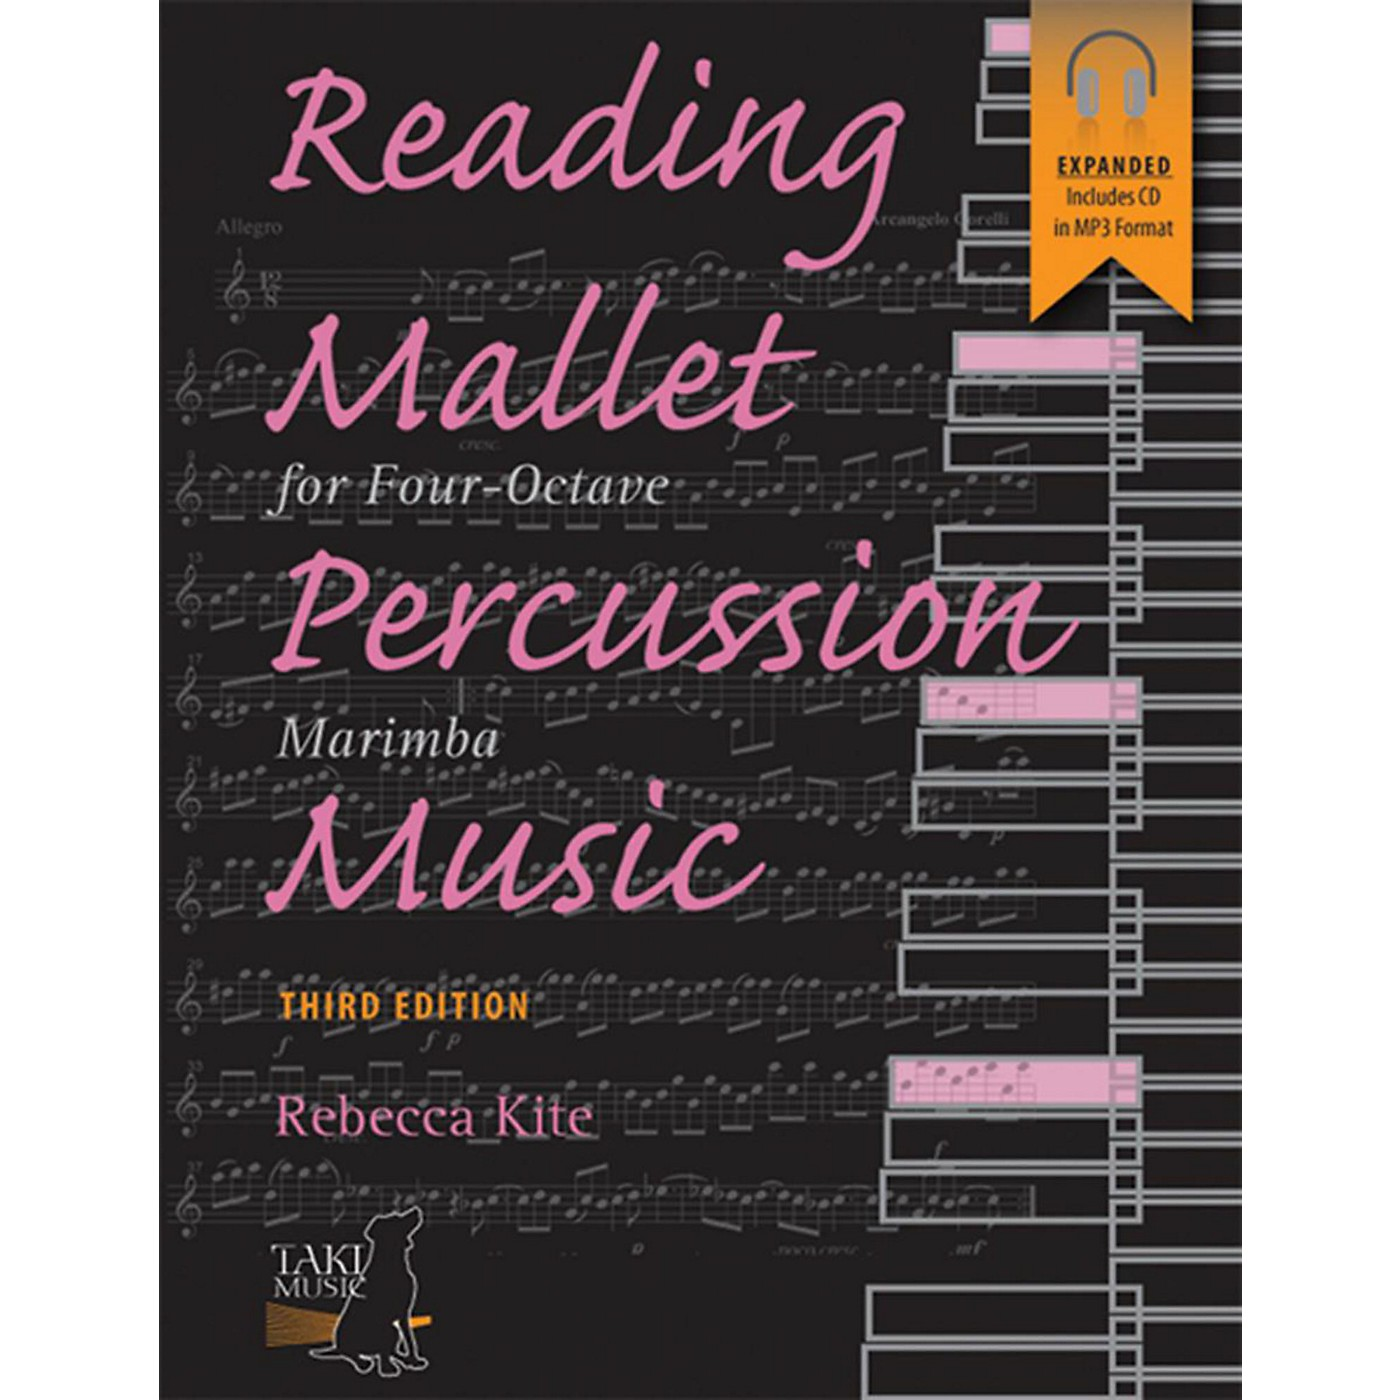 Alfred Reading Mallet Percussion Music For Four-Octave Marimba (Third Edition) Book & CD thumbnail